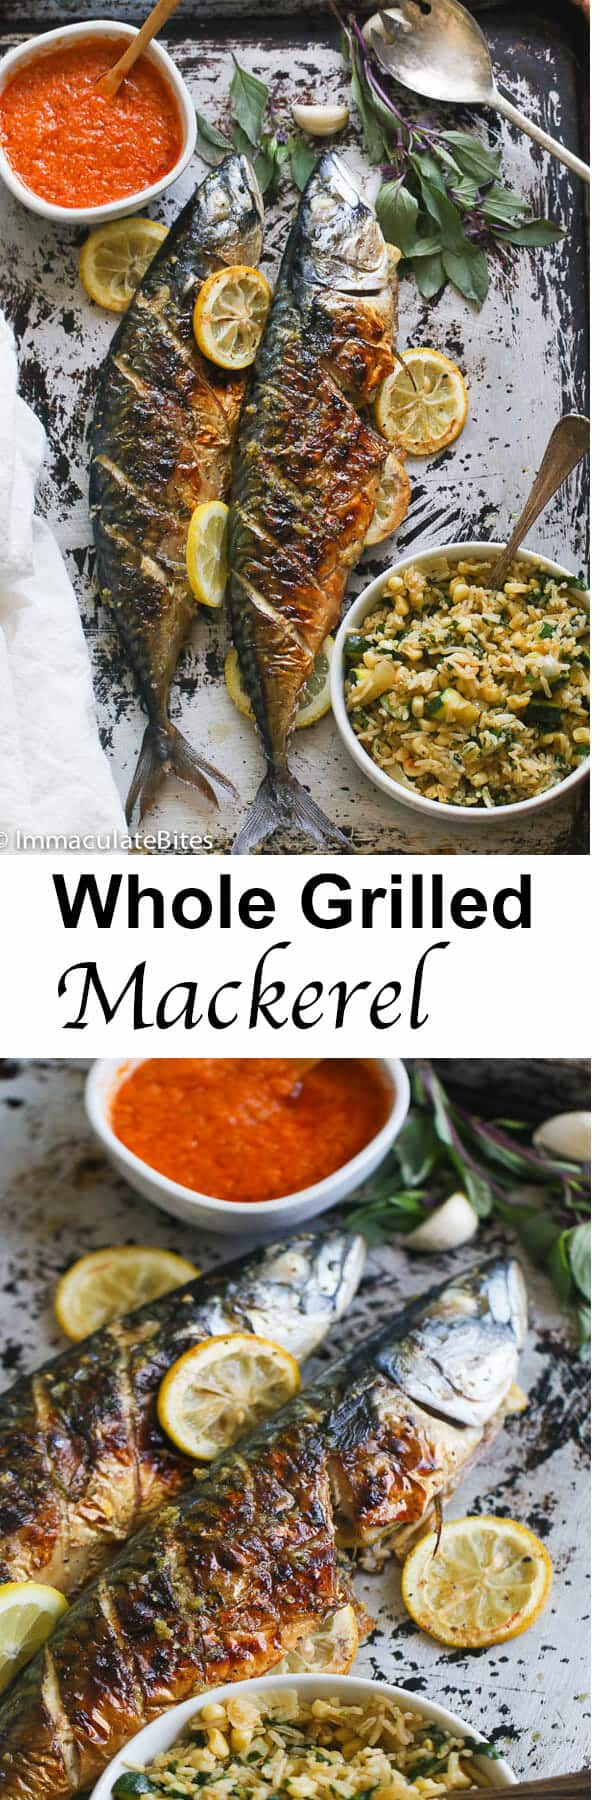 Whole-grilled-mackerel